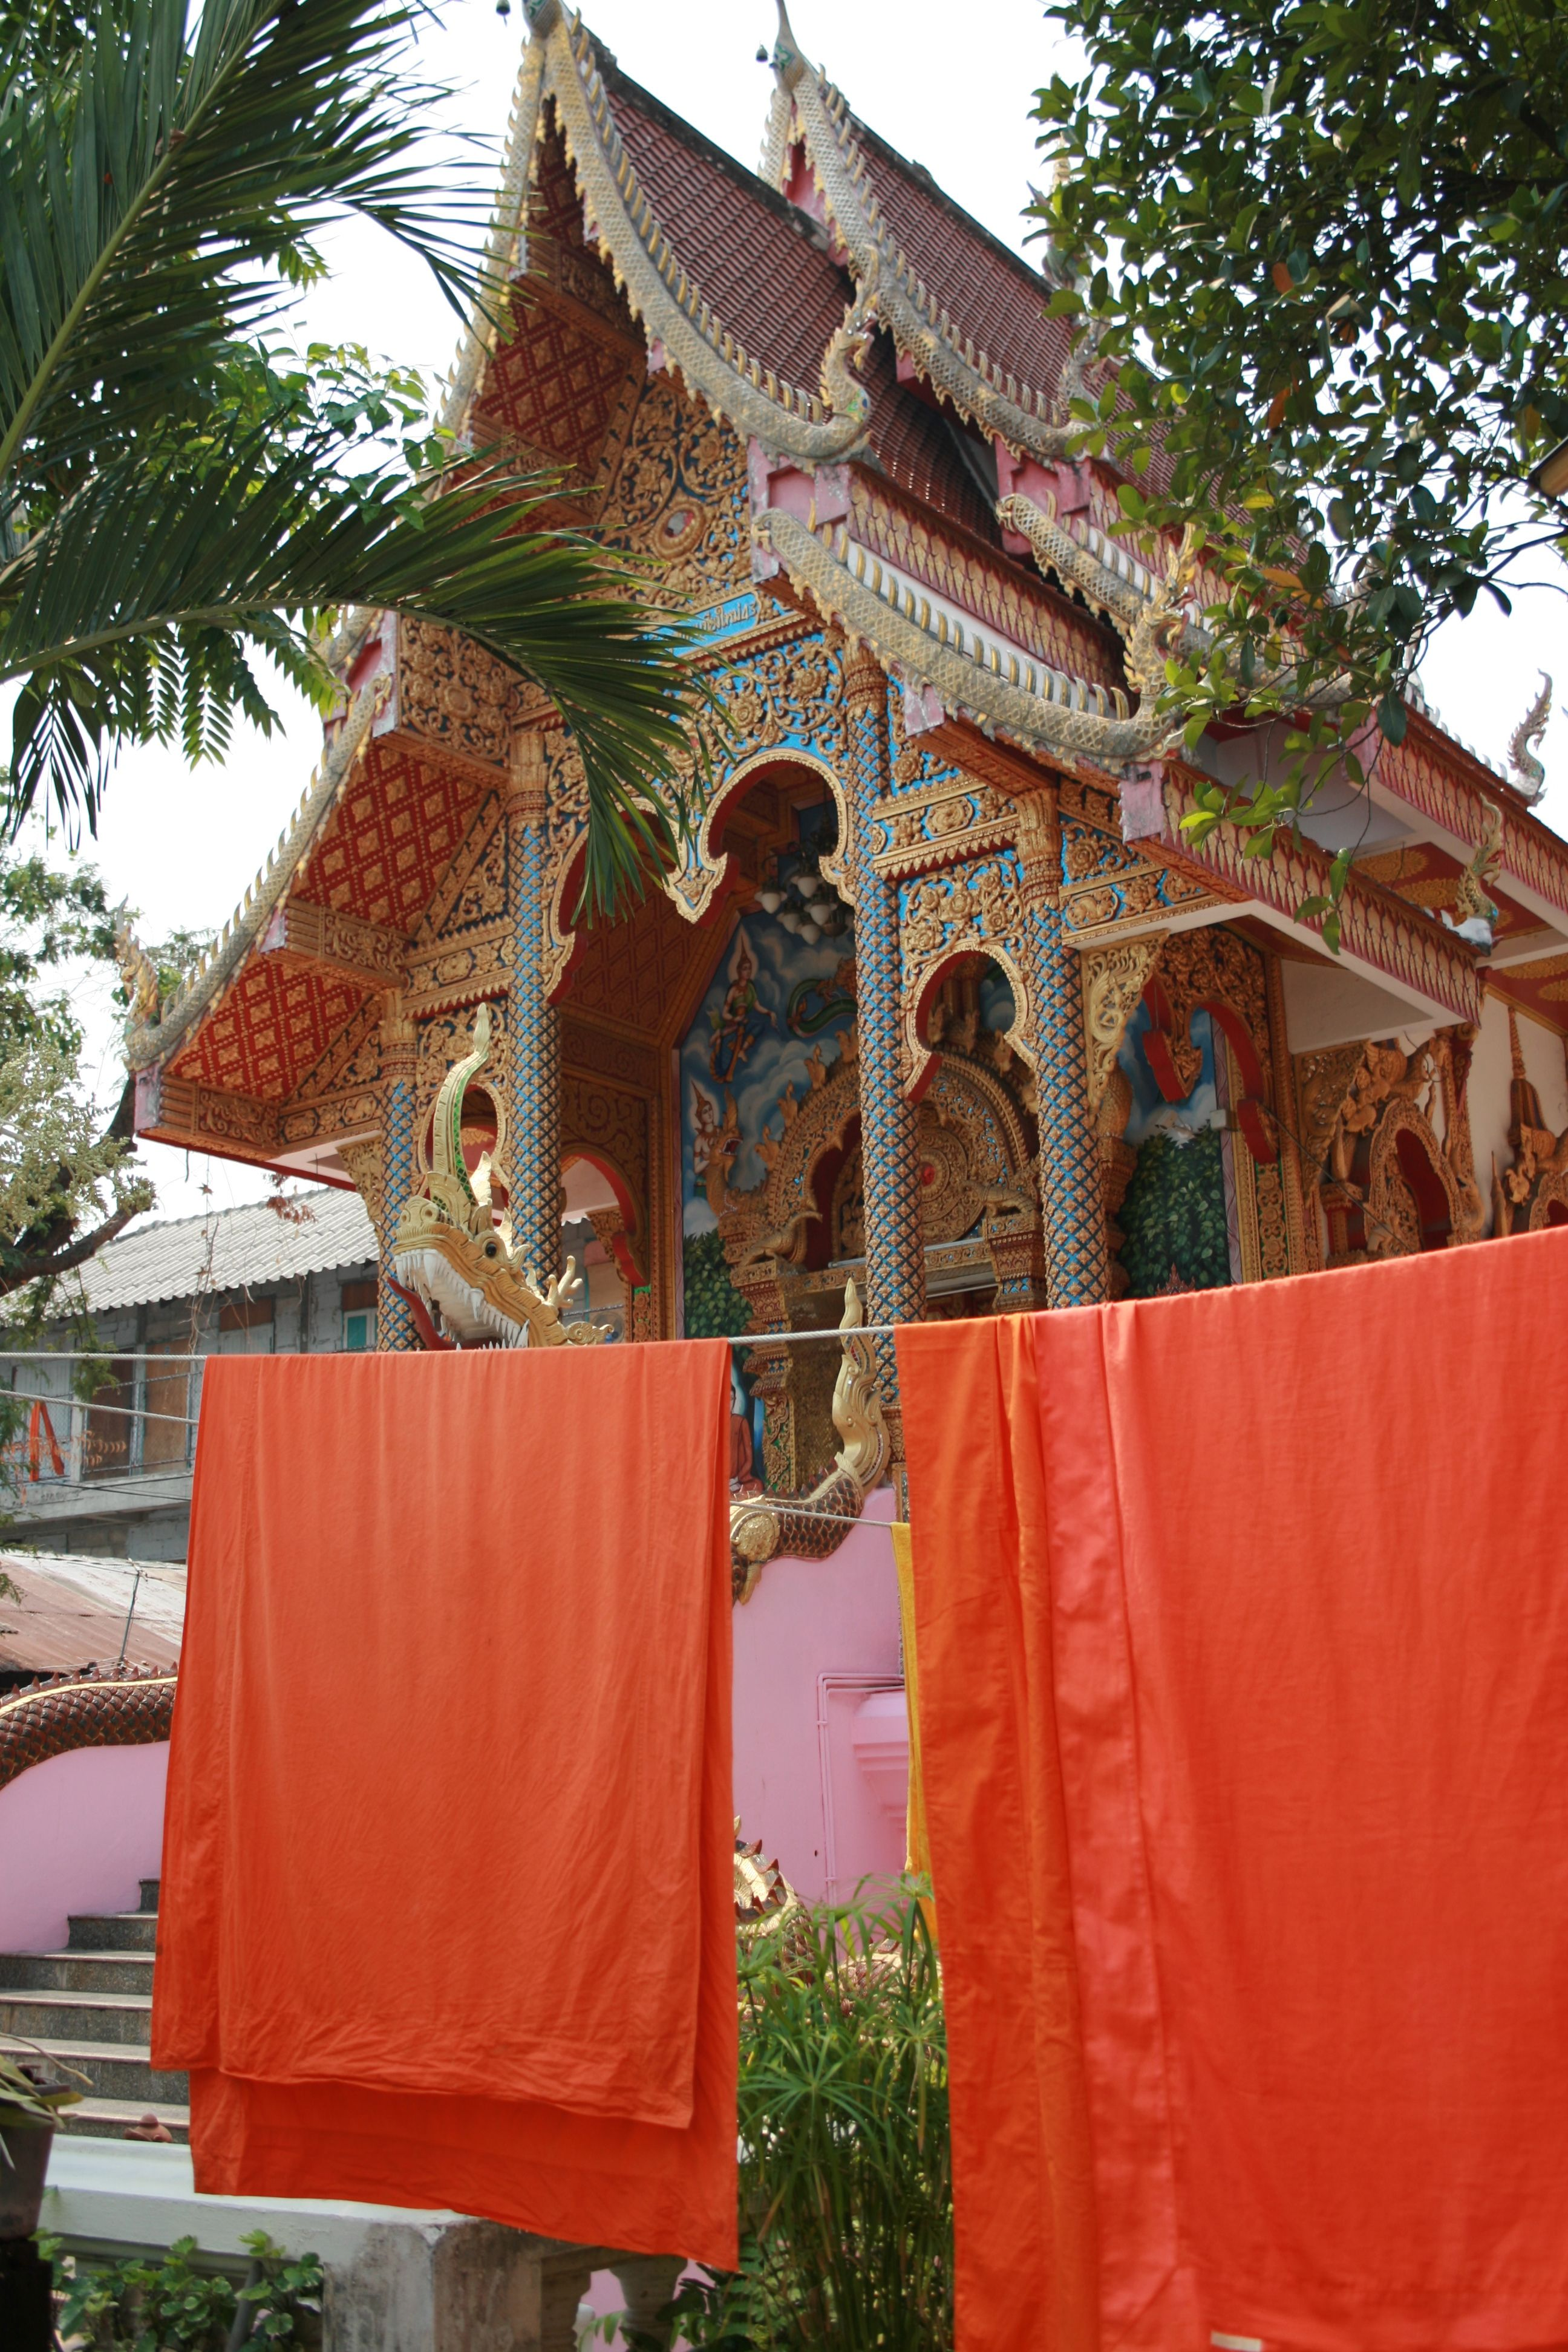 Monk Robes in Chiang Mai, Thailand